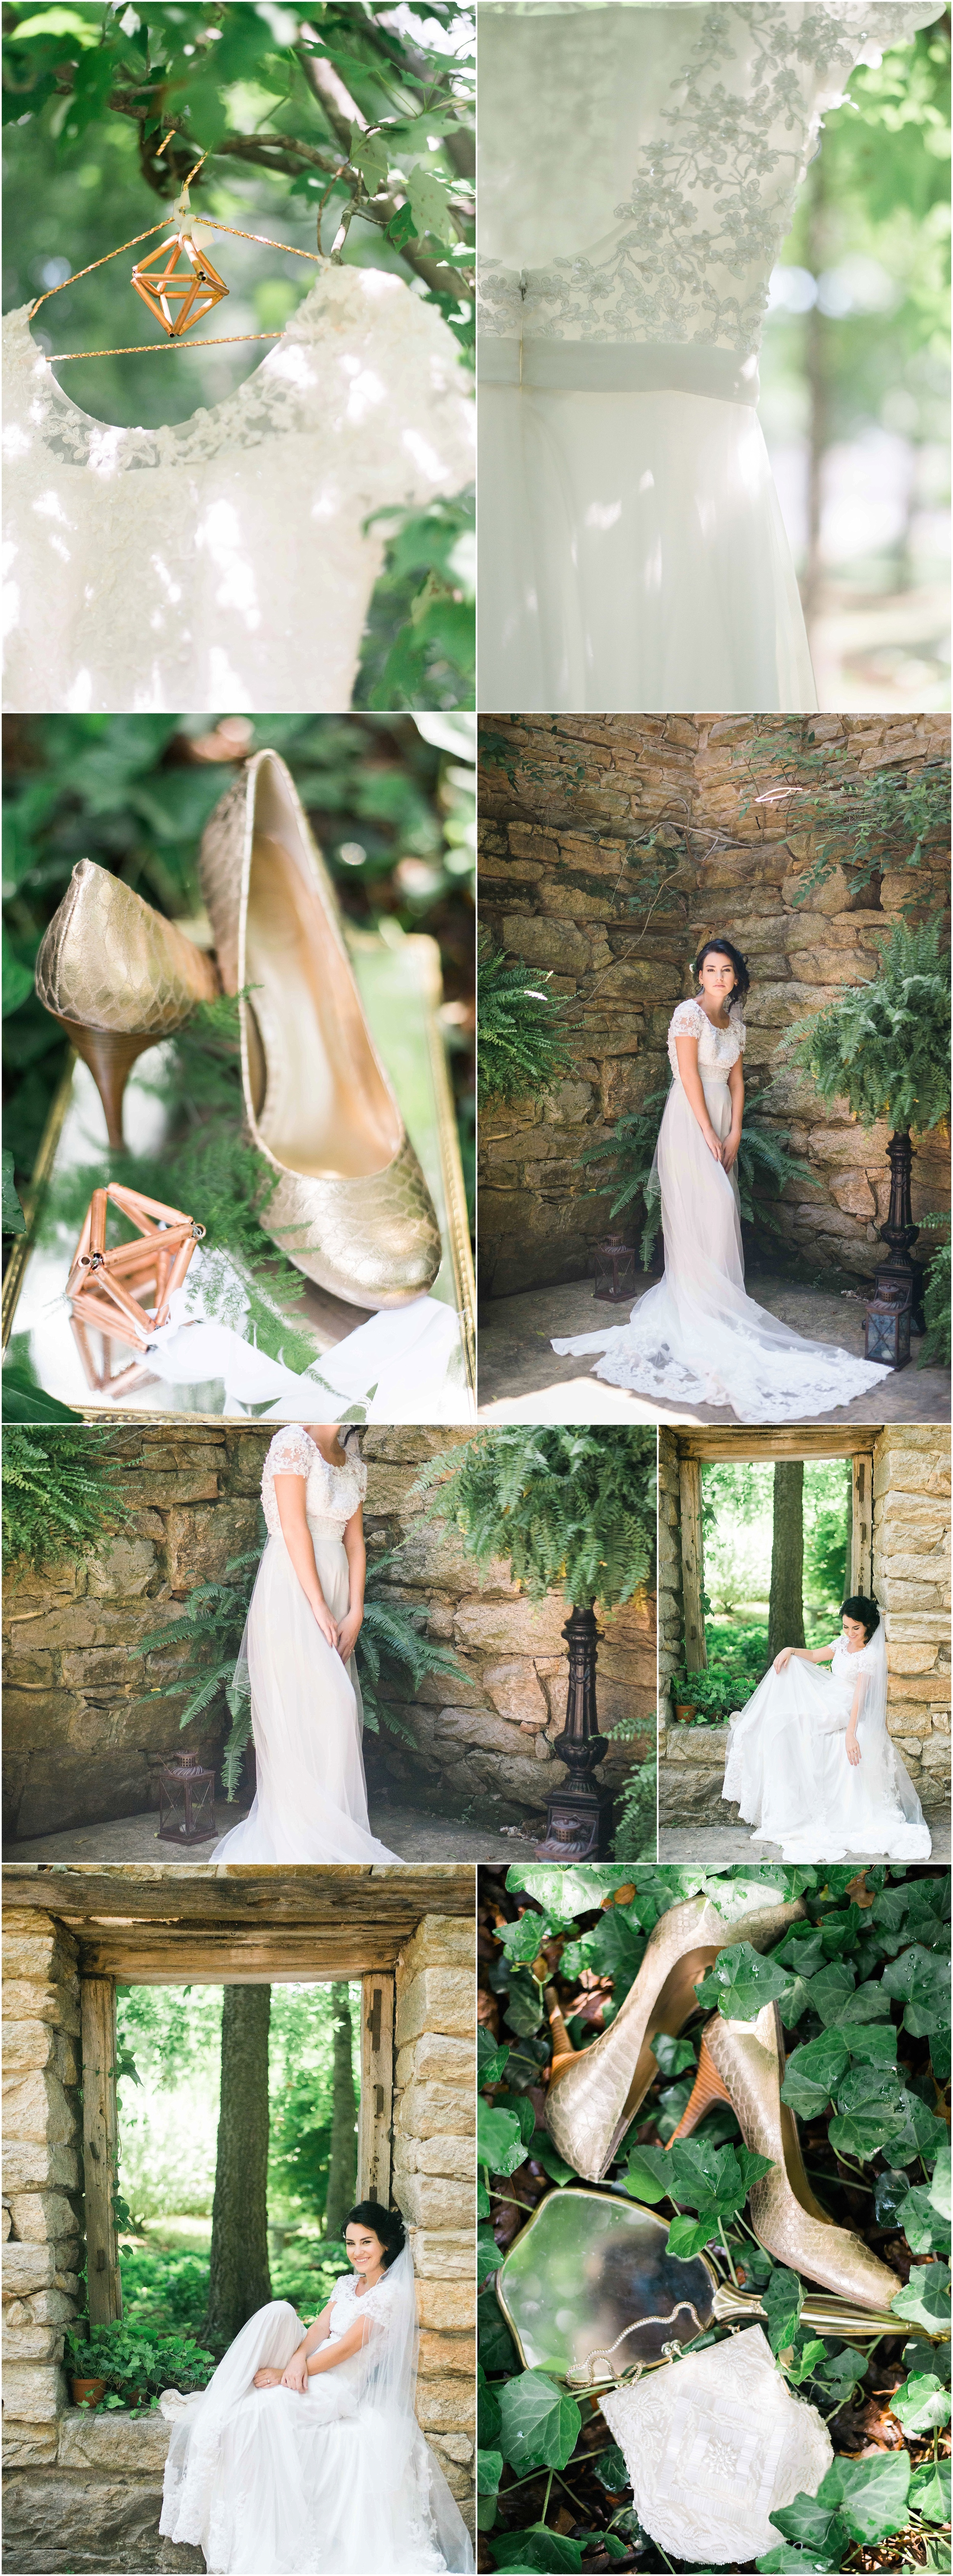 charlottesville_wedding Photographer_styled shoot_Style Me Pretty Feature8